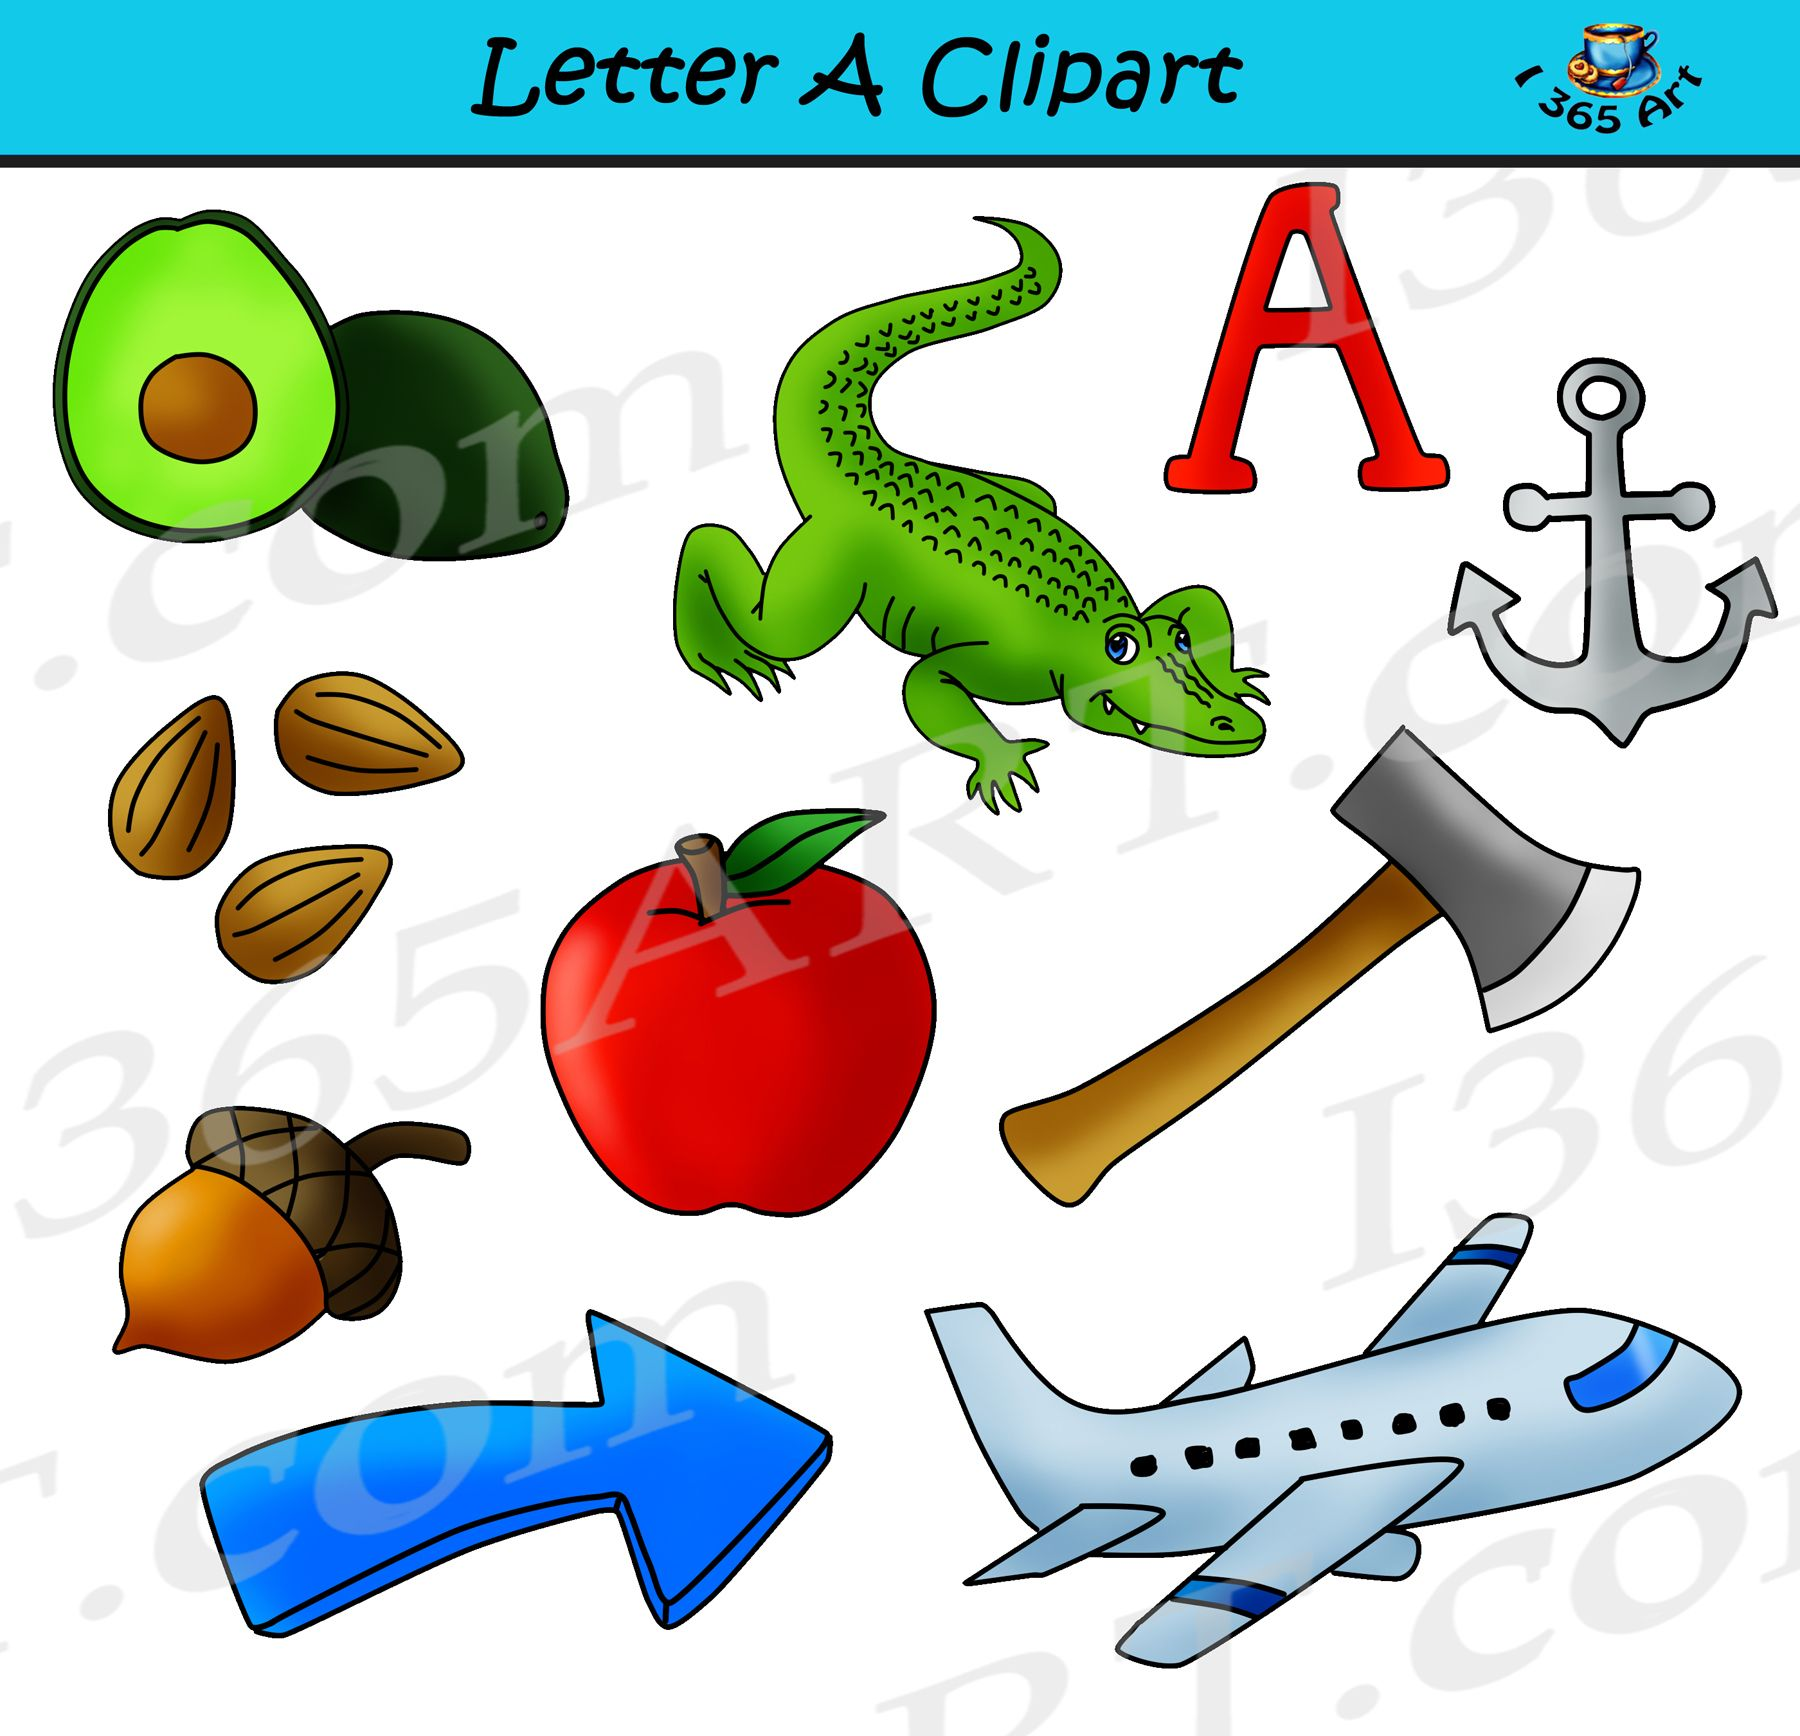 Letter A Objects Clipart Learning The Alphabets Commercial Clipart Learning The Alphabet Clip Art Lettering